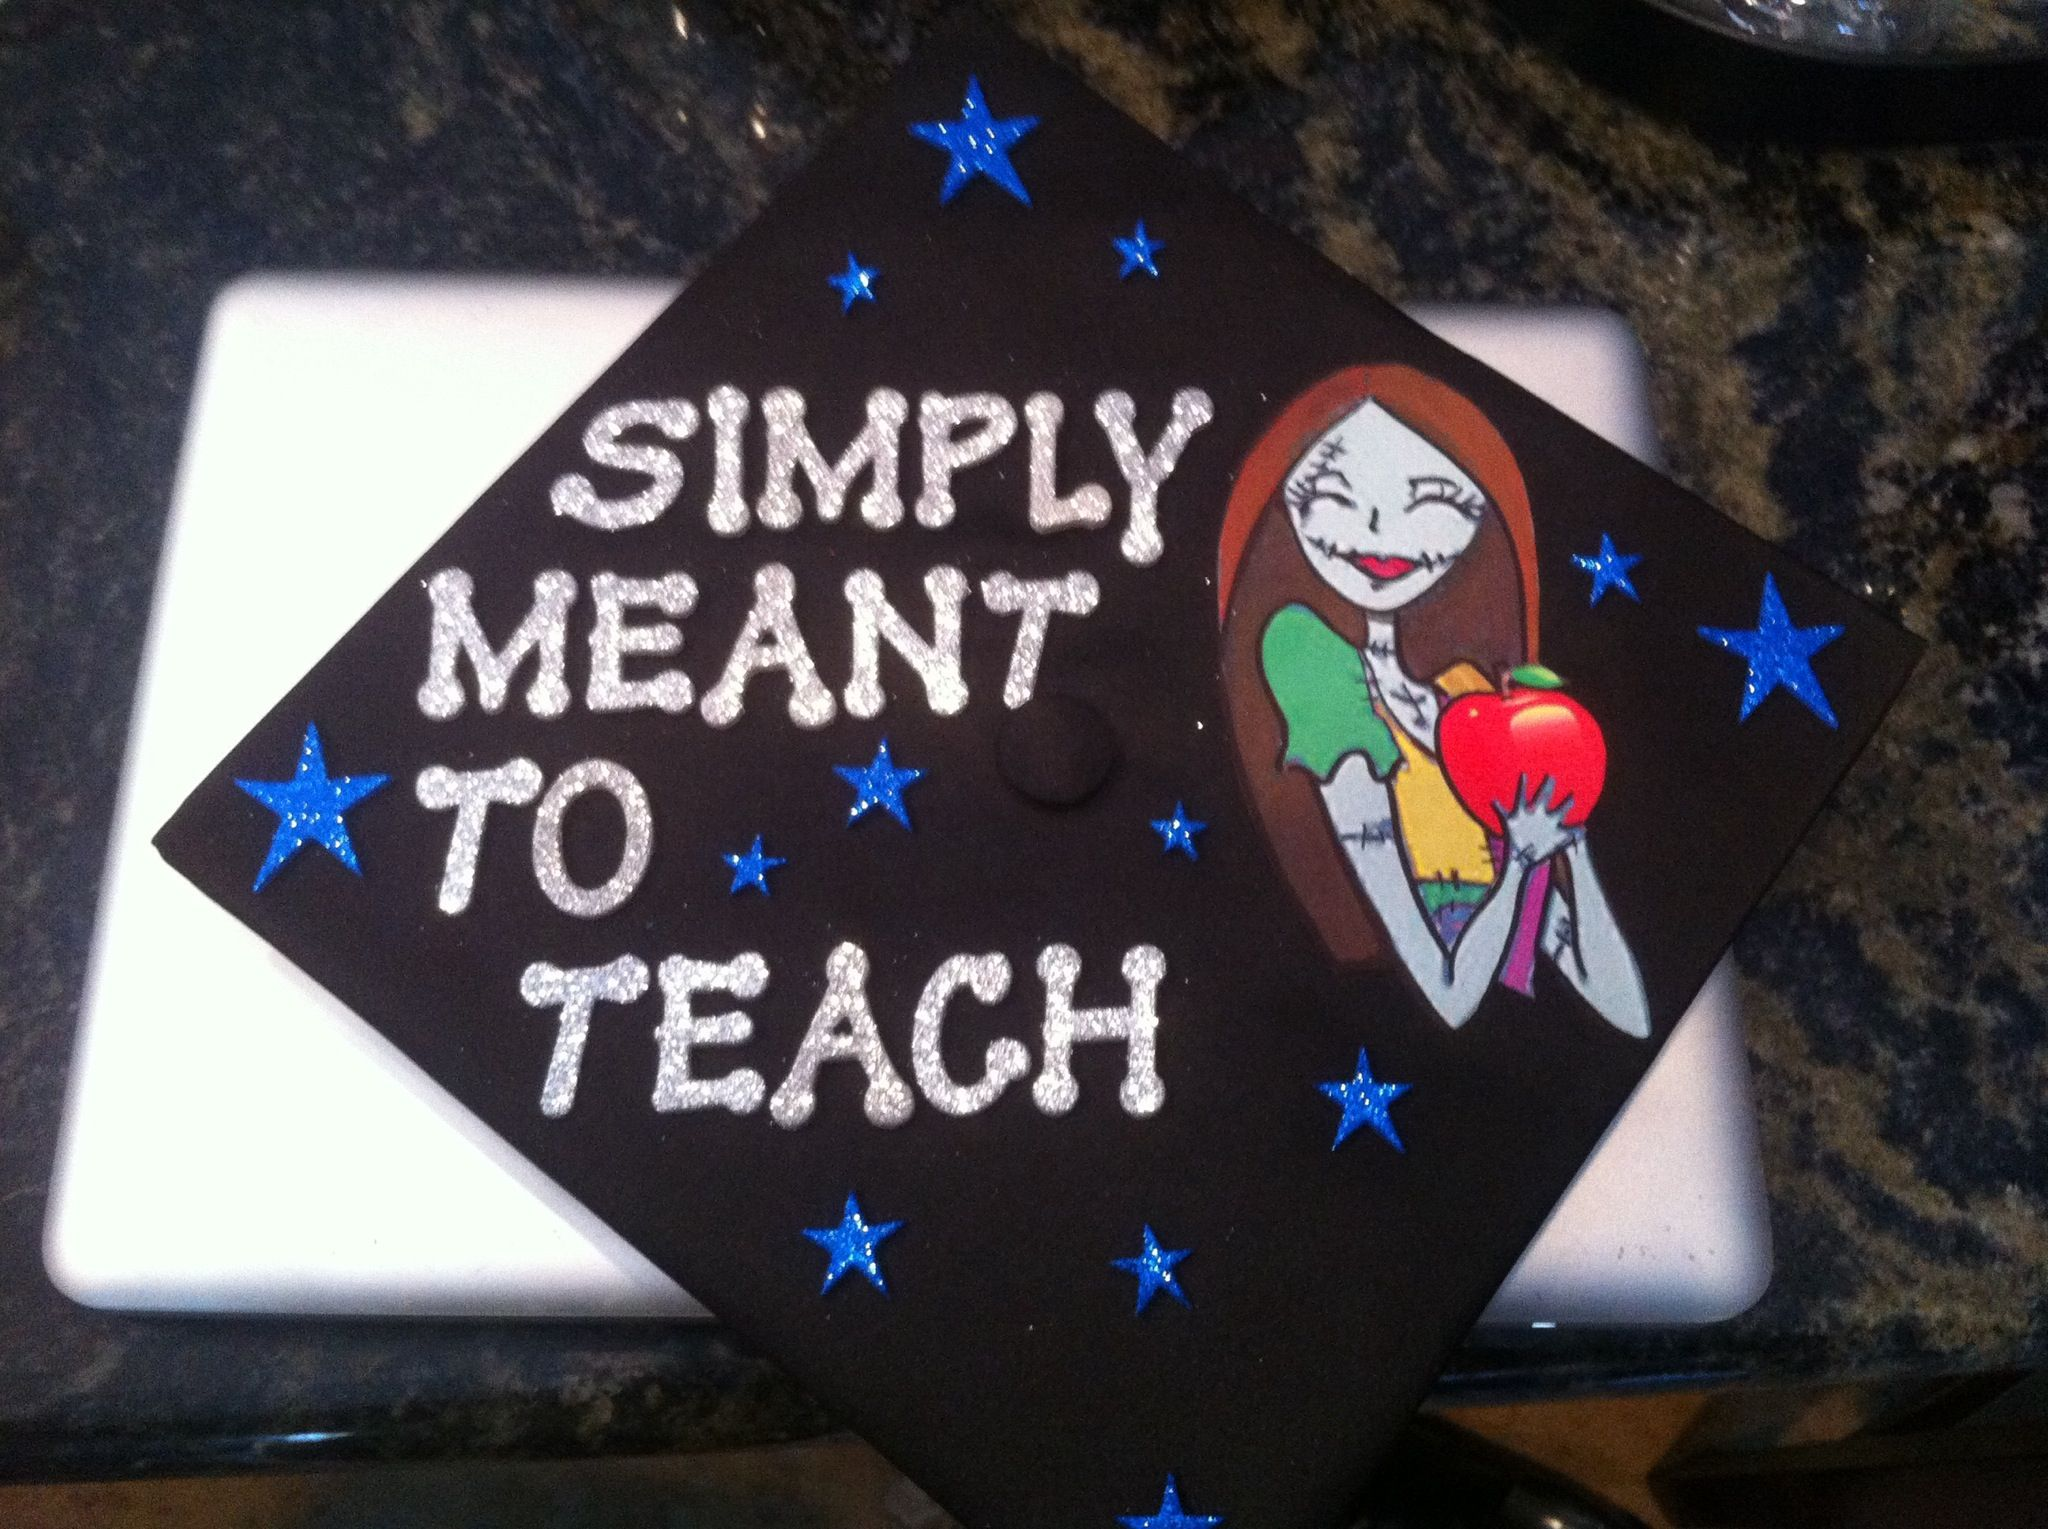 Decorating graduation cap ideas for teachers - My Graduation Cap Obsessed With The Nightmare Before Christmas And I M Going To Be A Teacher